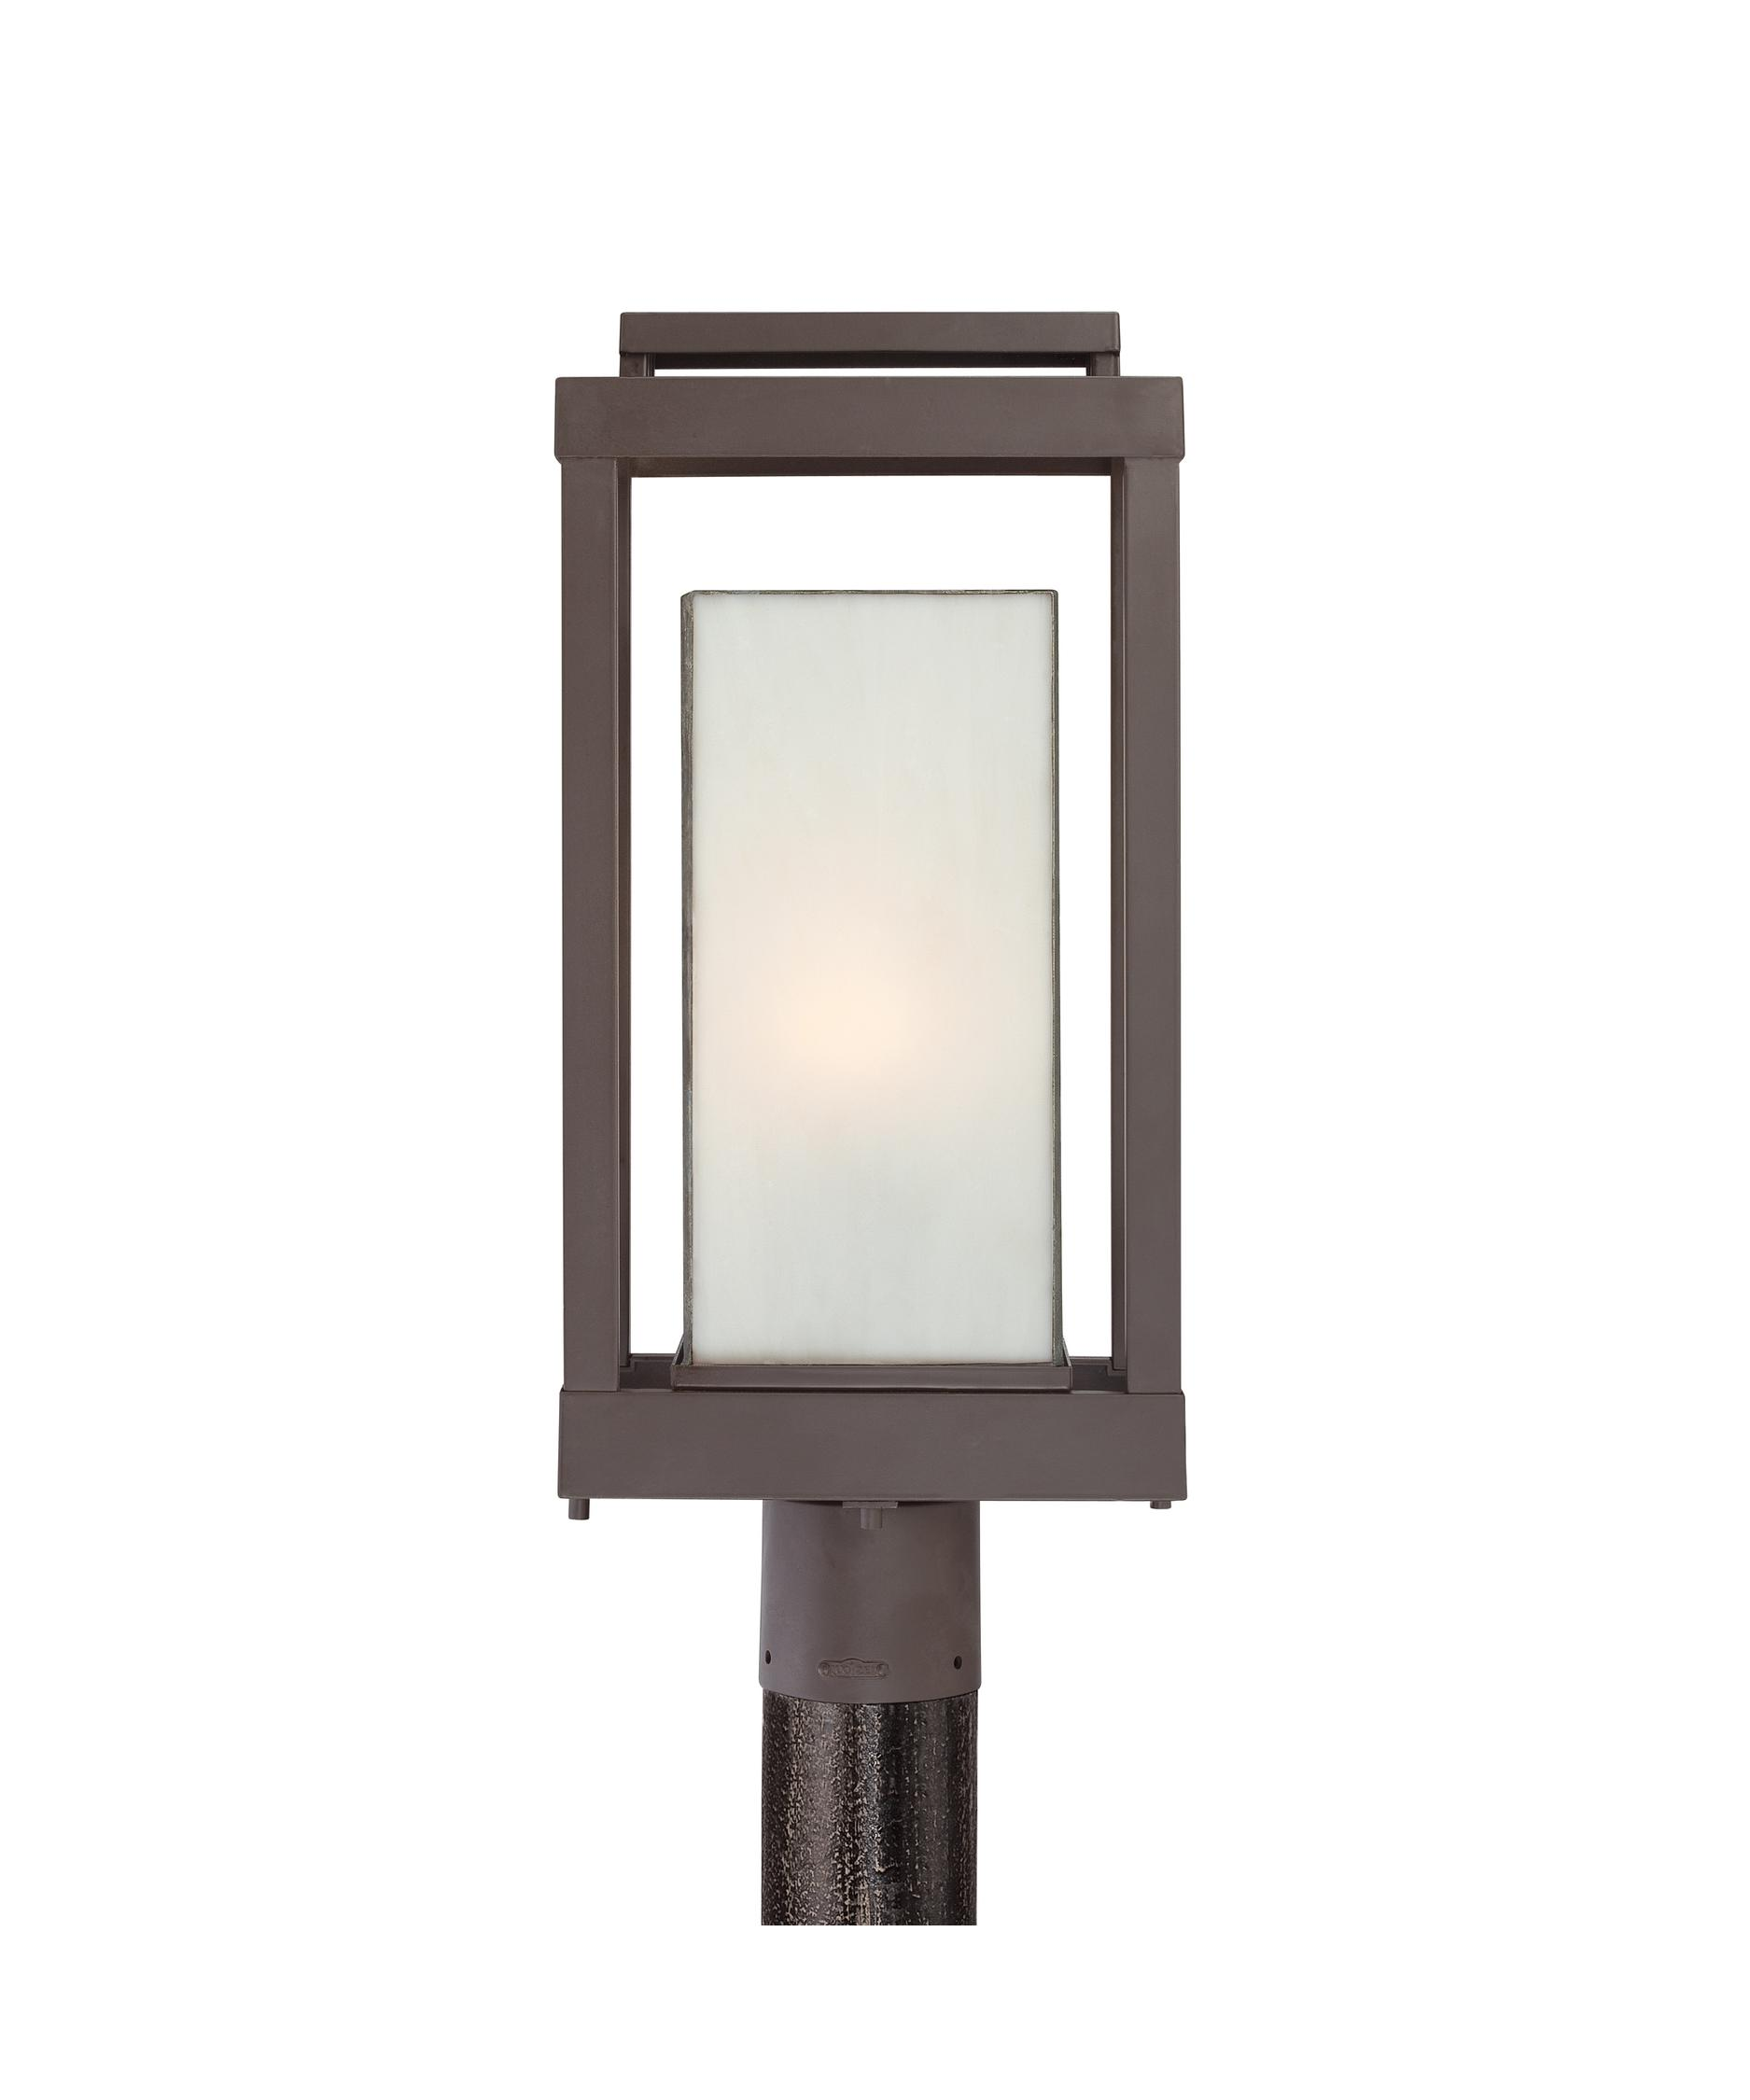 Quoizel PWL9009 Powell 9 Inch Wide 1 Light Outdoor Post Lamp ...